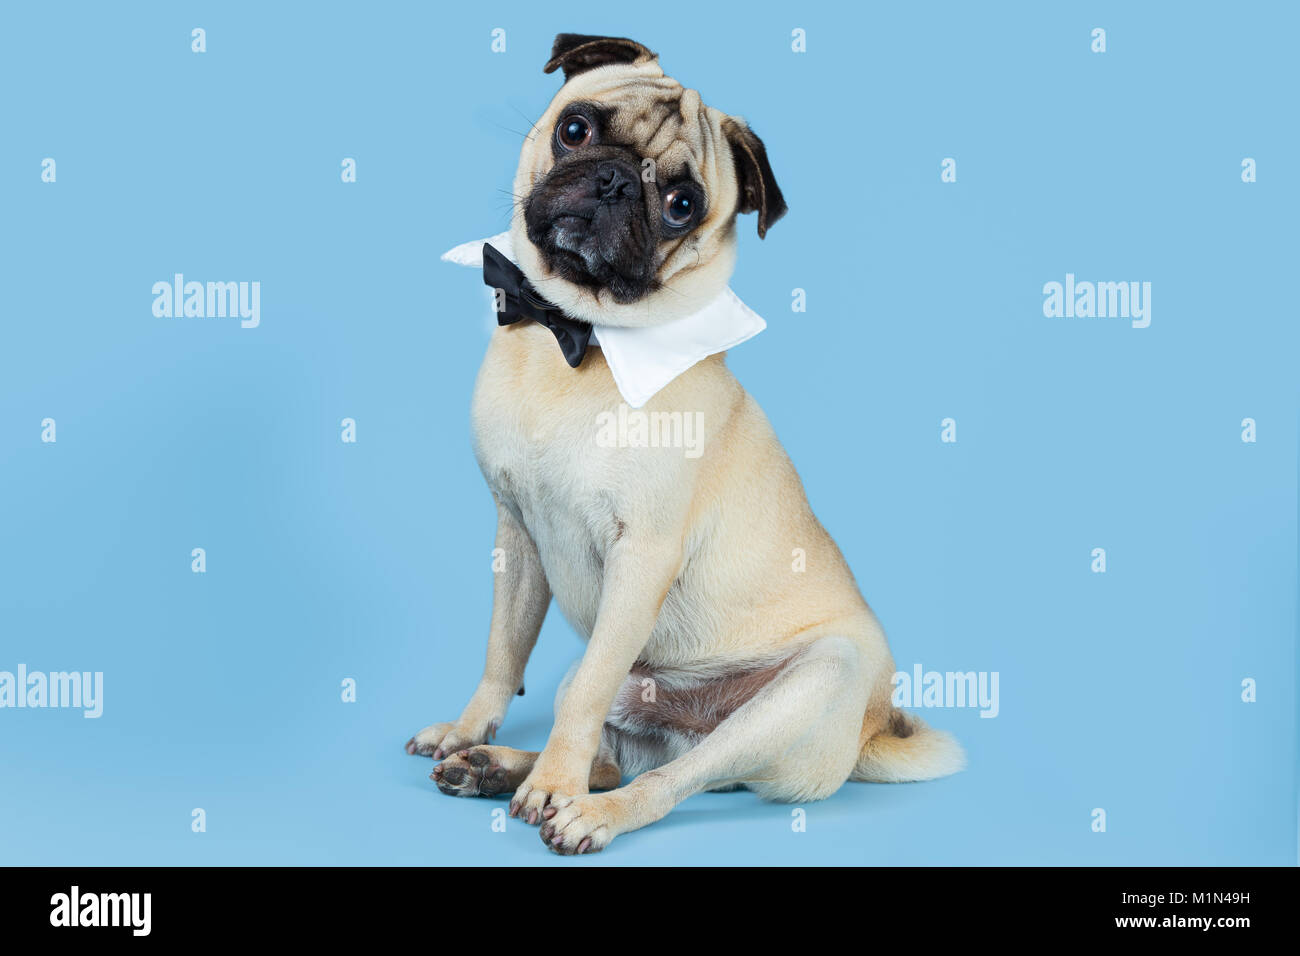 Popular Pug Bow Adorable Dog - a-cute-fawn-pug-wearing-a-bow-tie-as-a-collar-with-a-blue-background-M1N49H  Perfect Image Reference_51856  .jpg